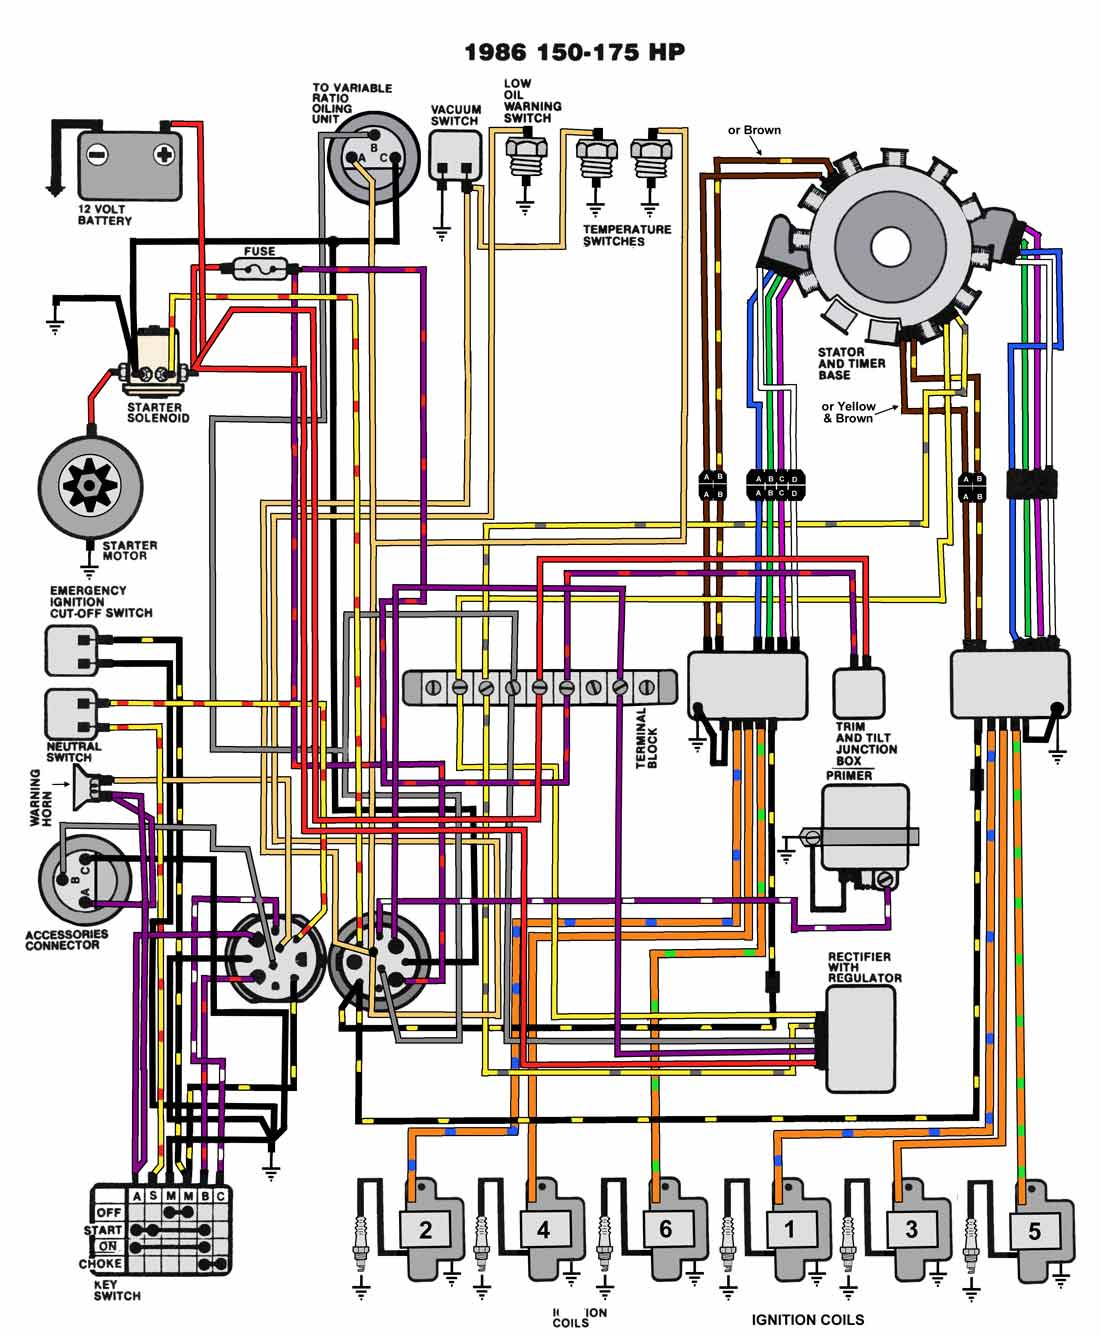 1986_150_175 maxrules wiring diagram wiring color standards \u2022 wiring diagrams 1992 johnson 40 hp outboard wiring diagram at soozxer.org